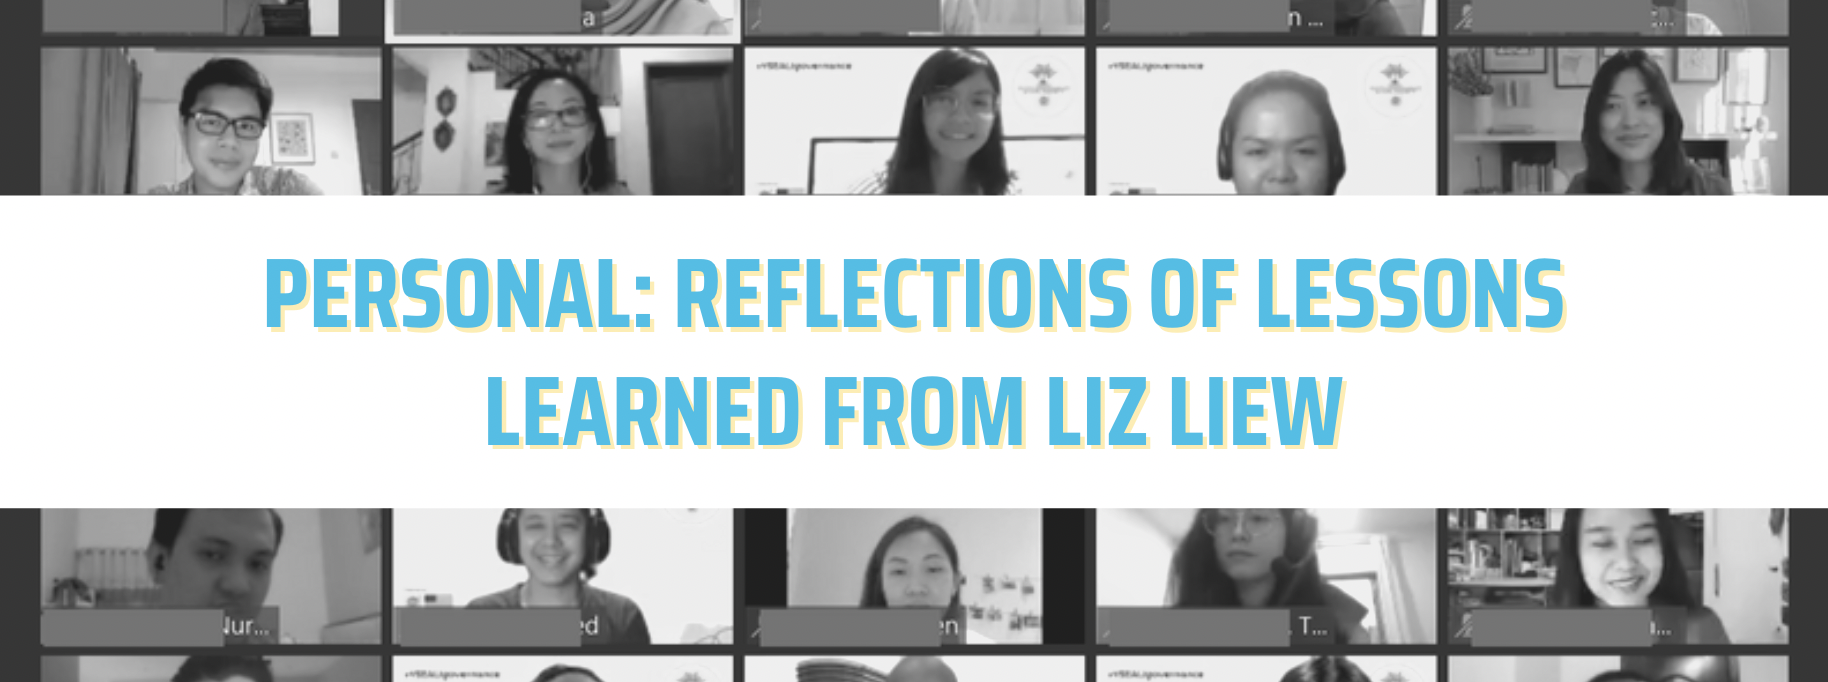 Personal: Reflections of Lessons Learned from Liz Liew